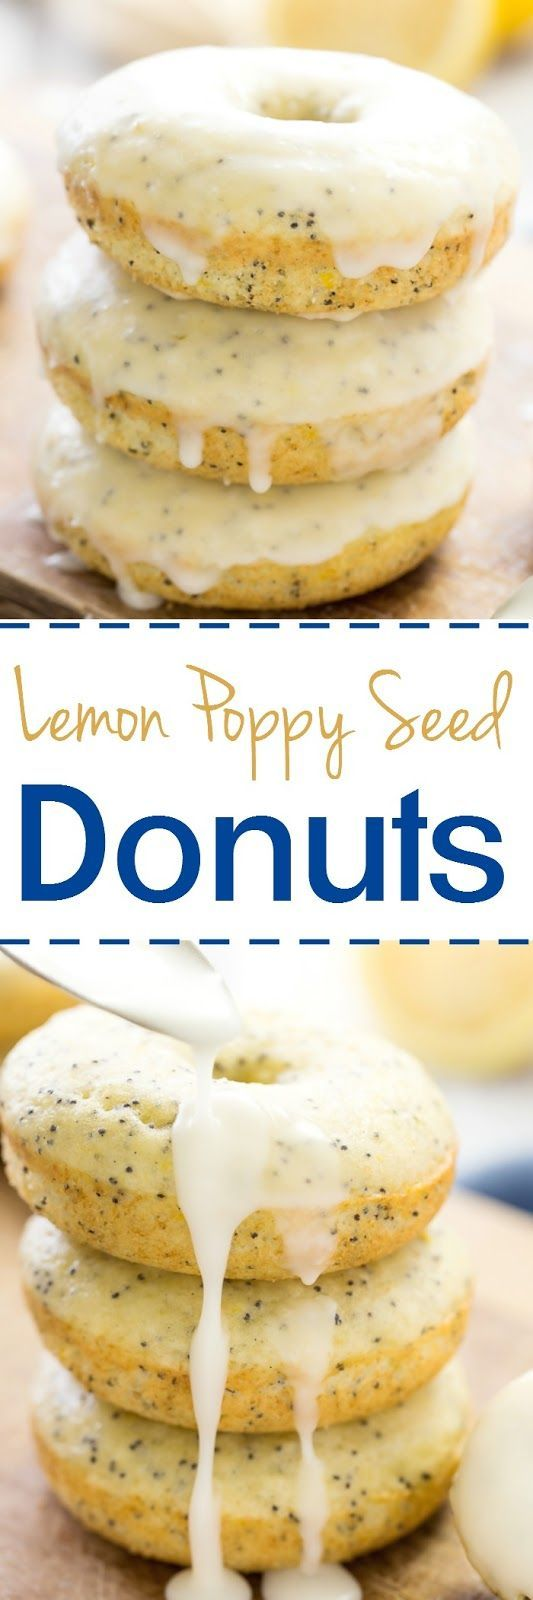 These baked lemon poppy seed donuts are just a nice treat to satisfy your sweet tooth without a too many calories.